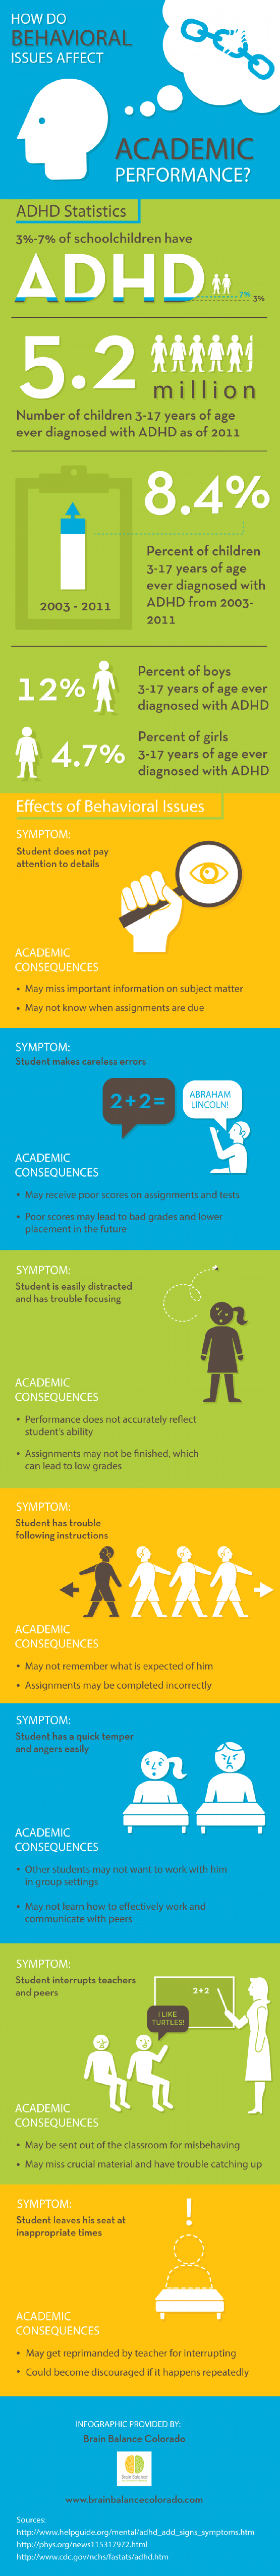 How Do Behavioral Issues Affect Academic Performance? Infographic